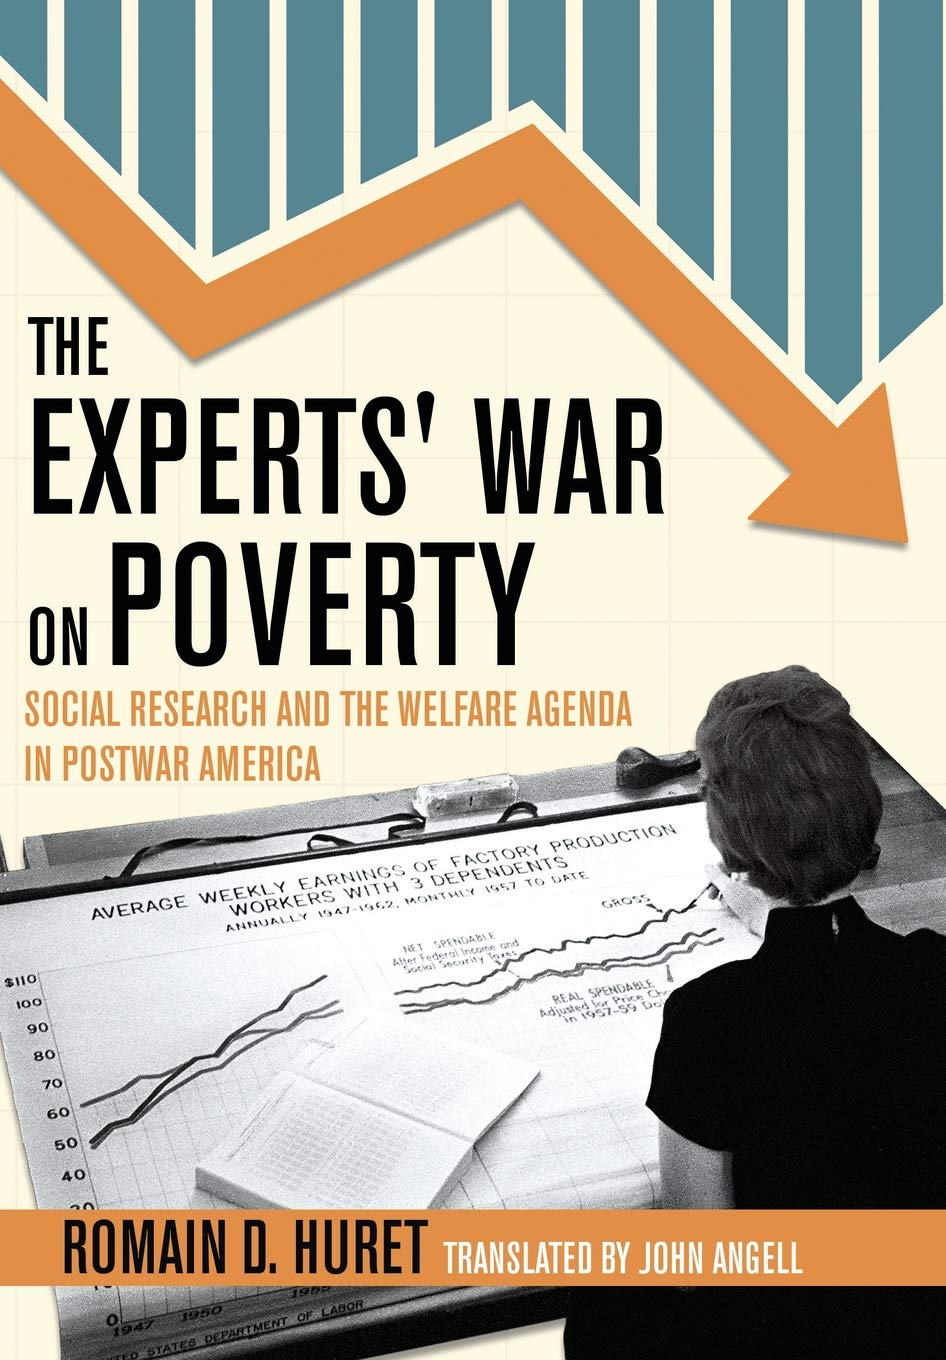 The Experts' War on Poverty: Social Research and the Welfare